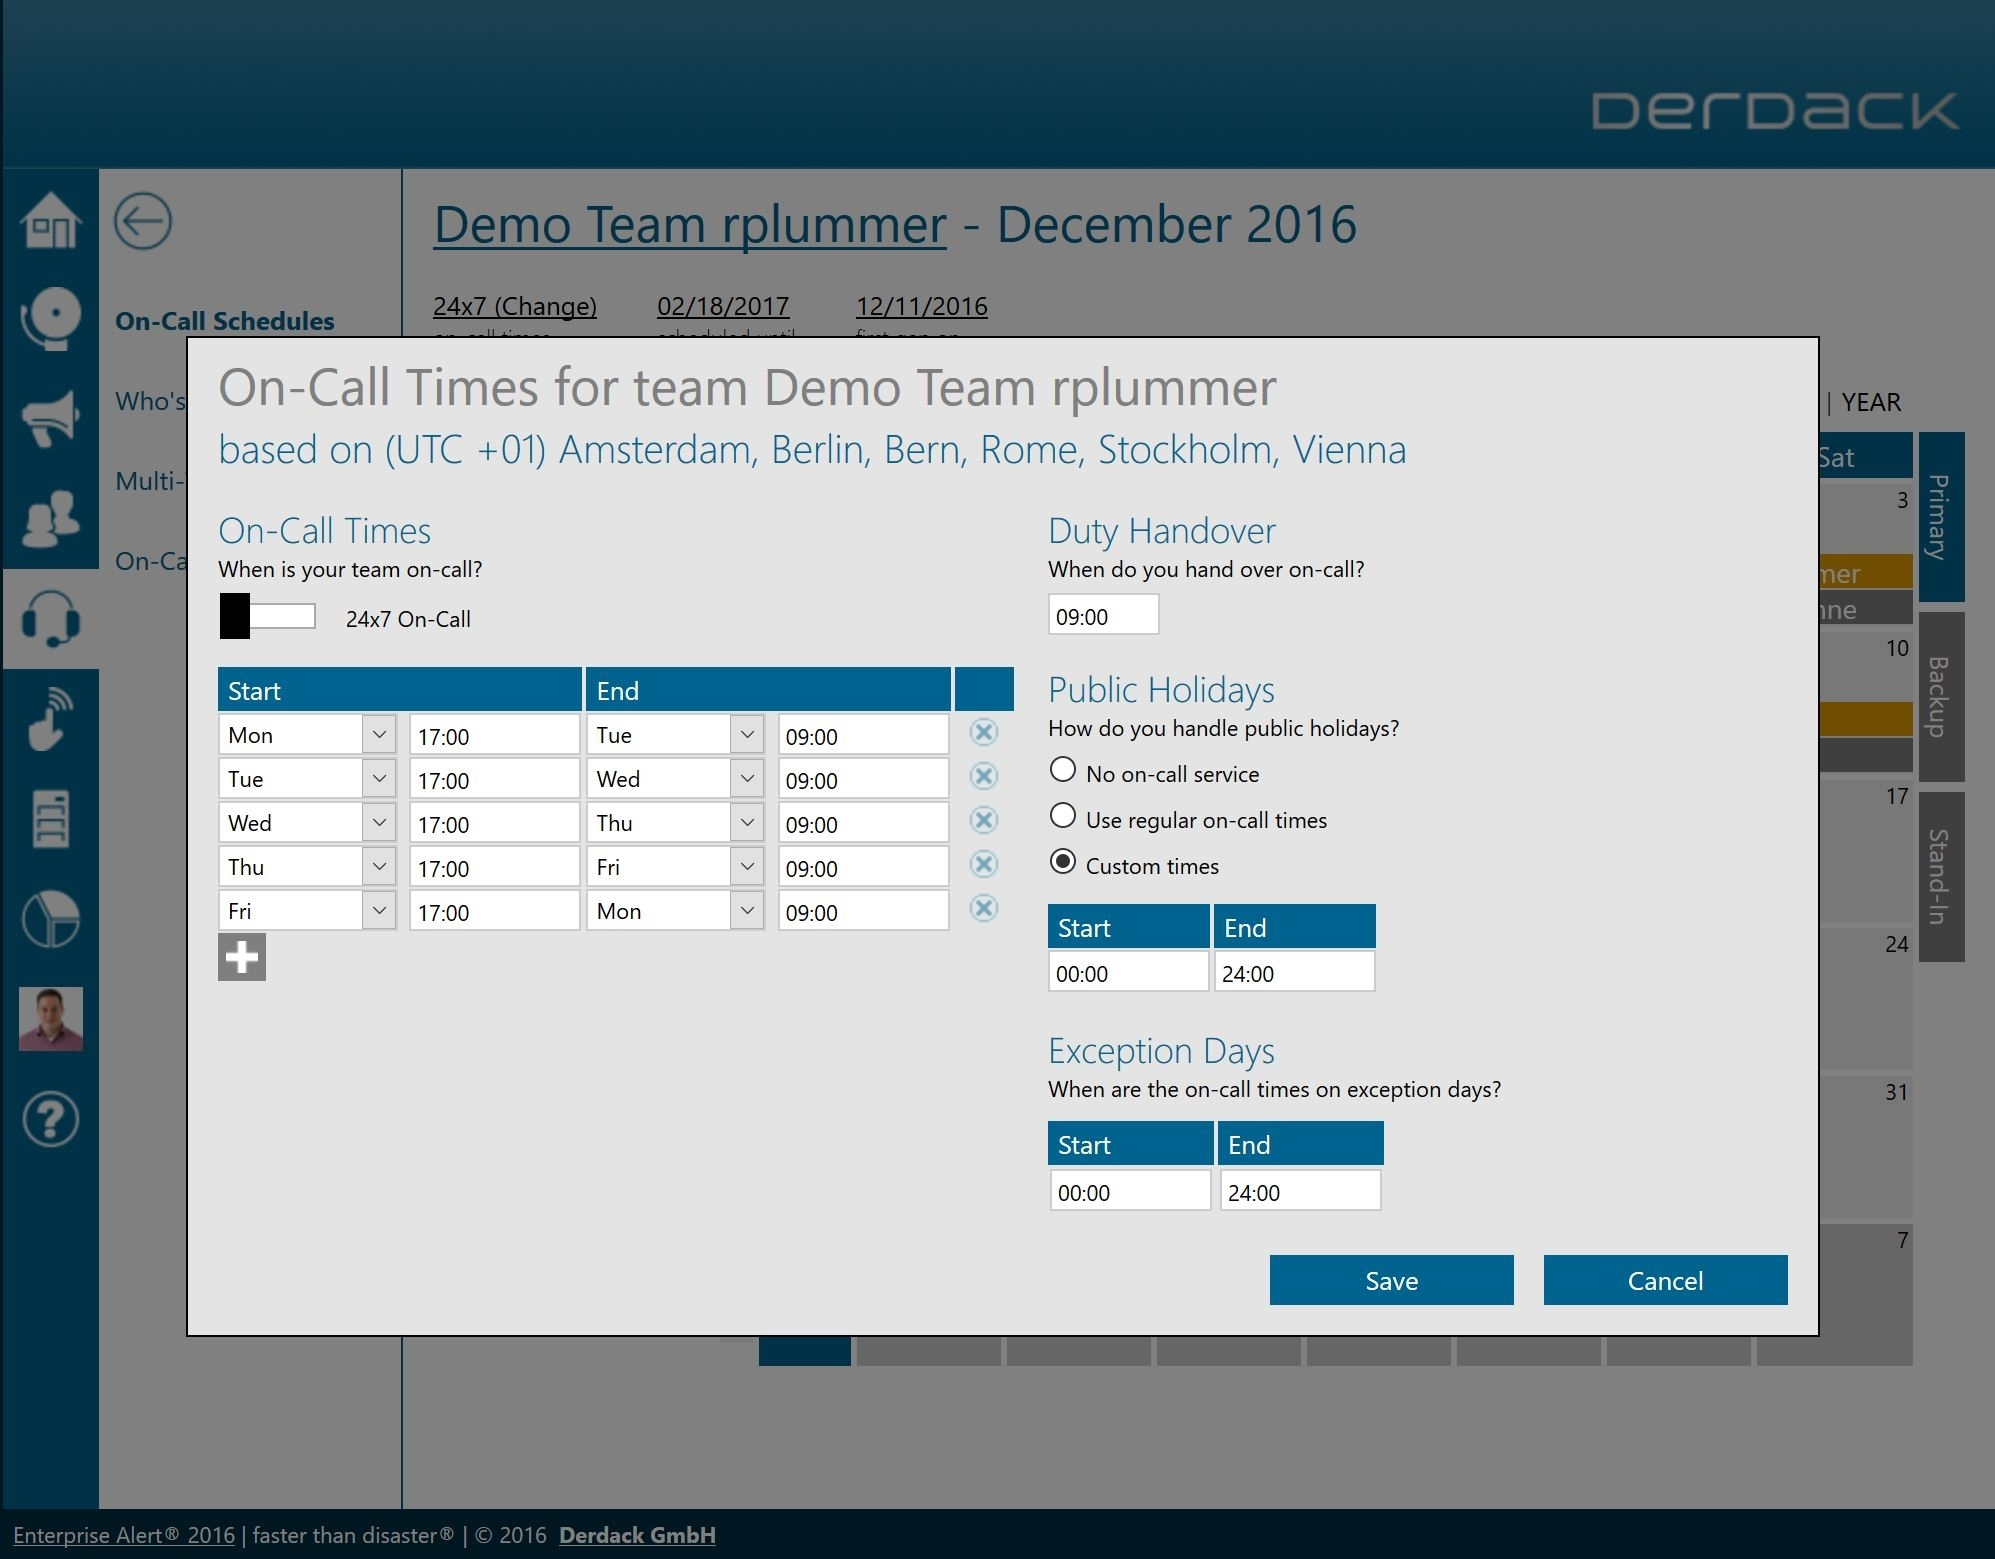 Derdack | On-Call Schedule Management With Auto-Rotation